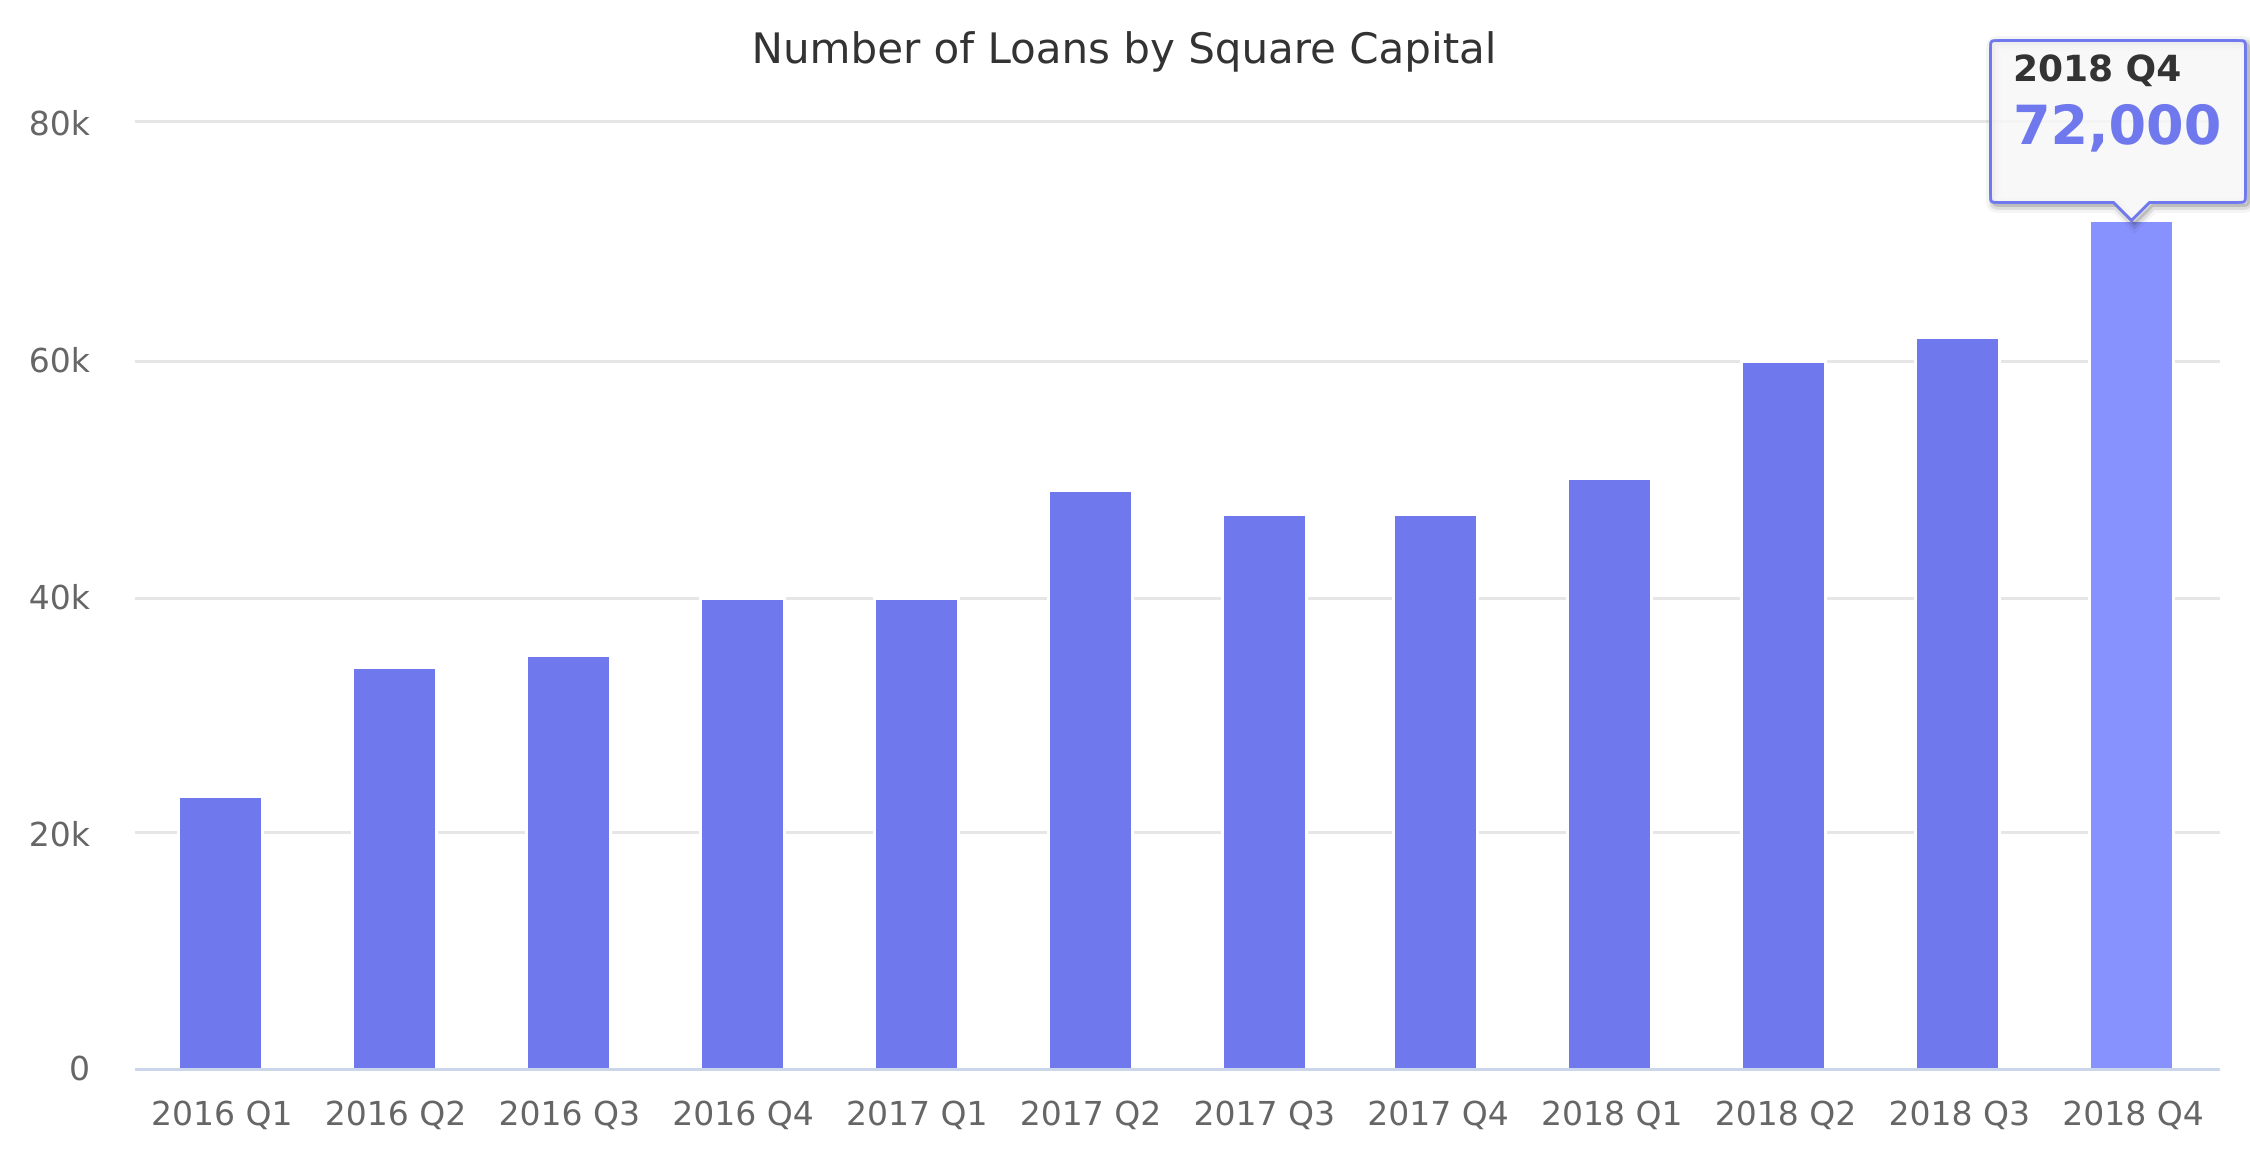 Number of Loans by Square Capital 2016-2018